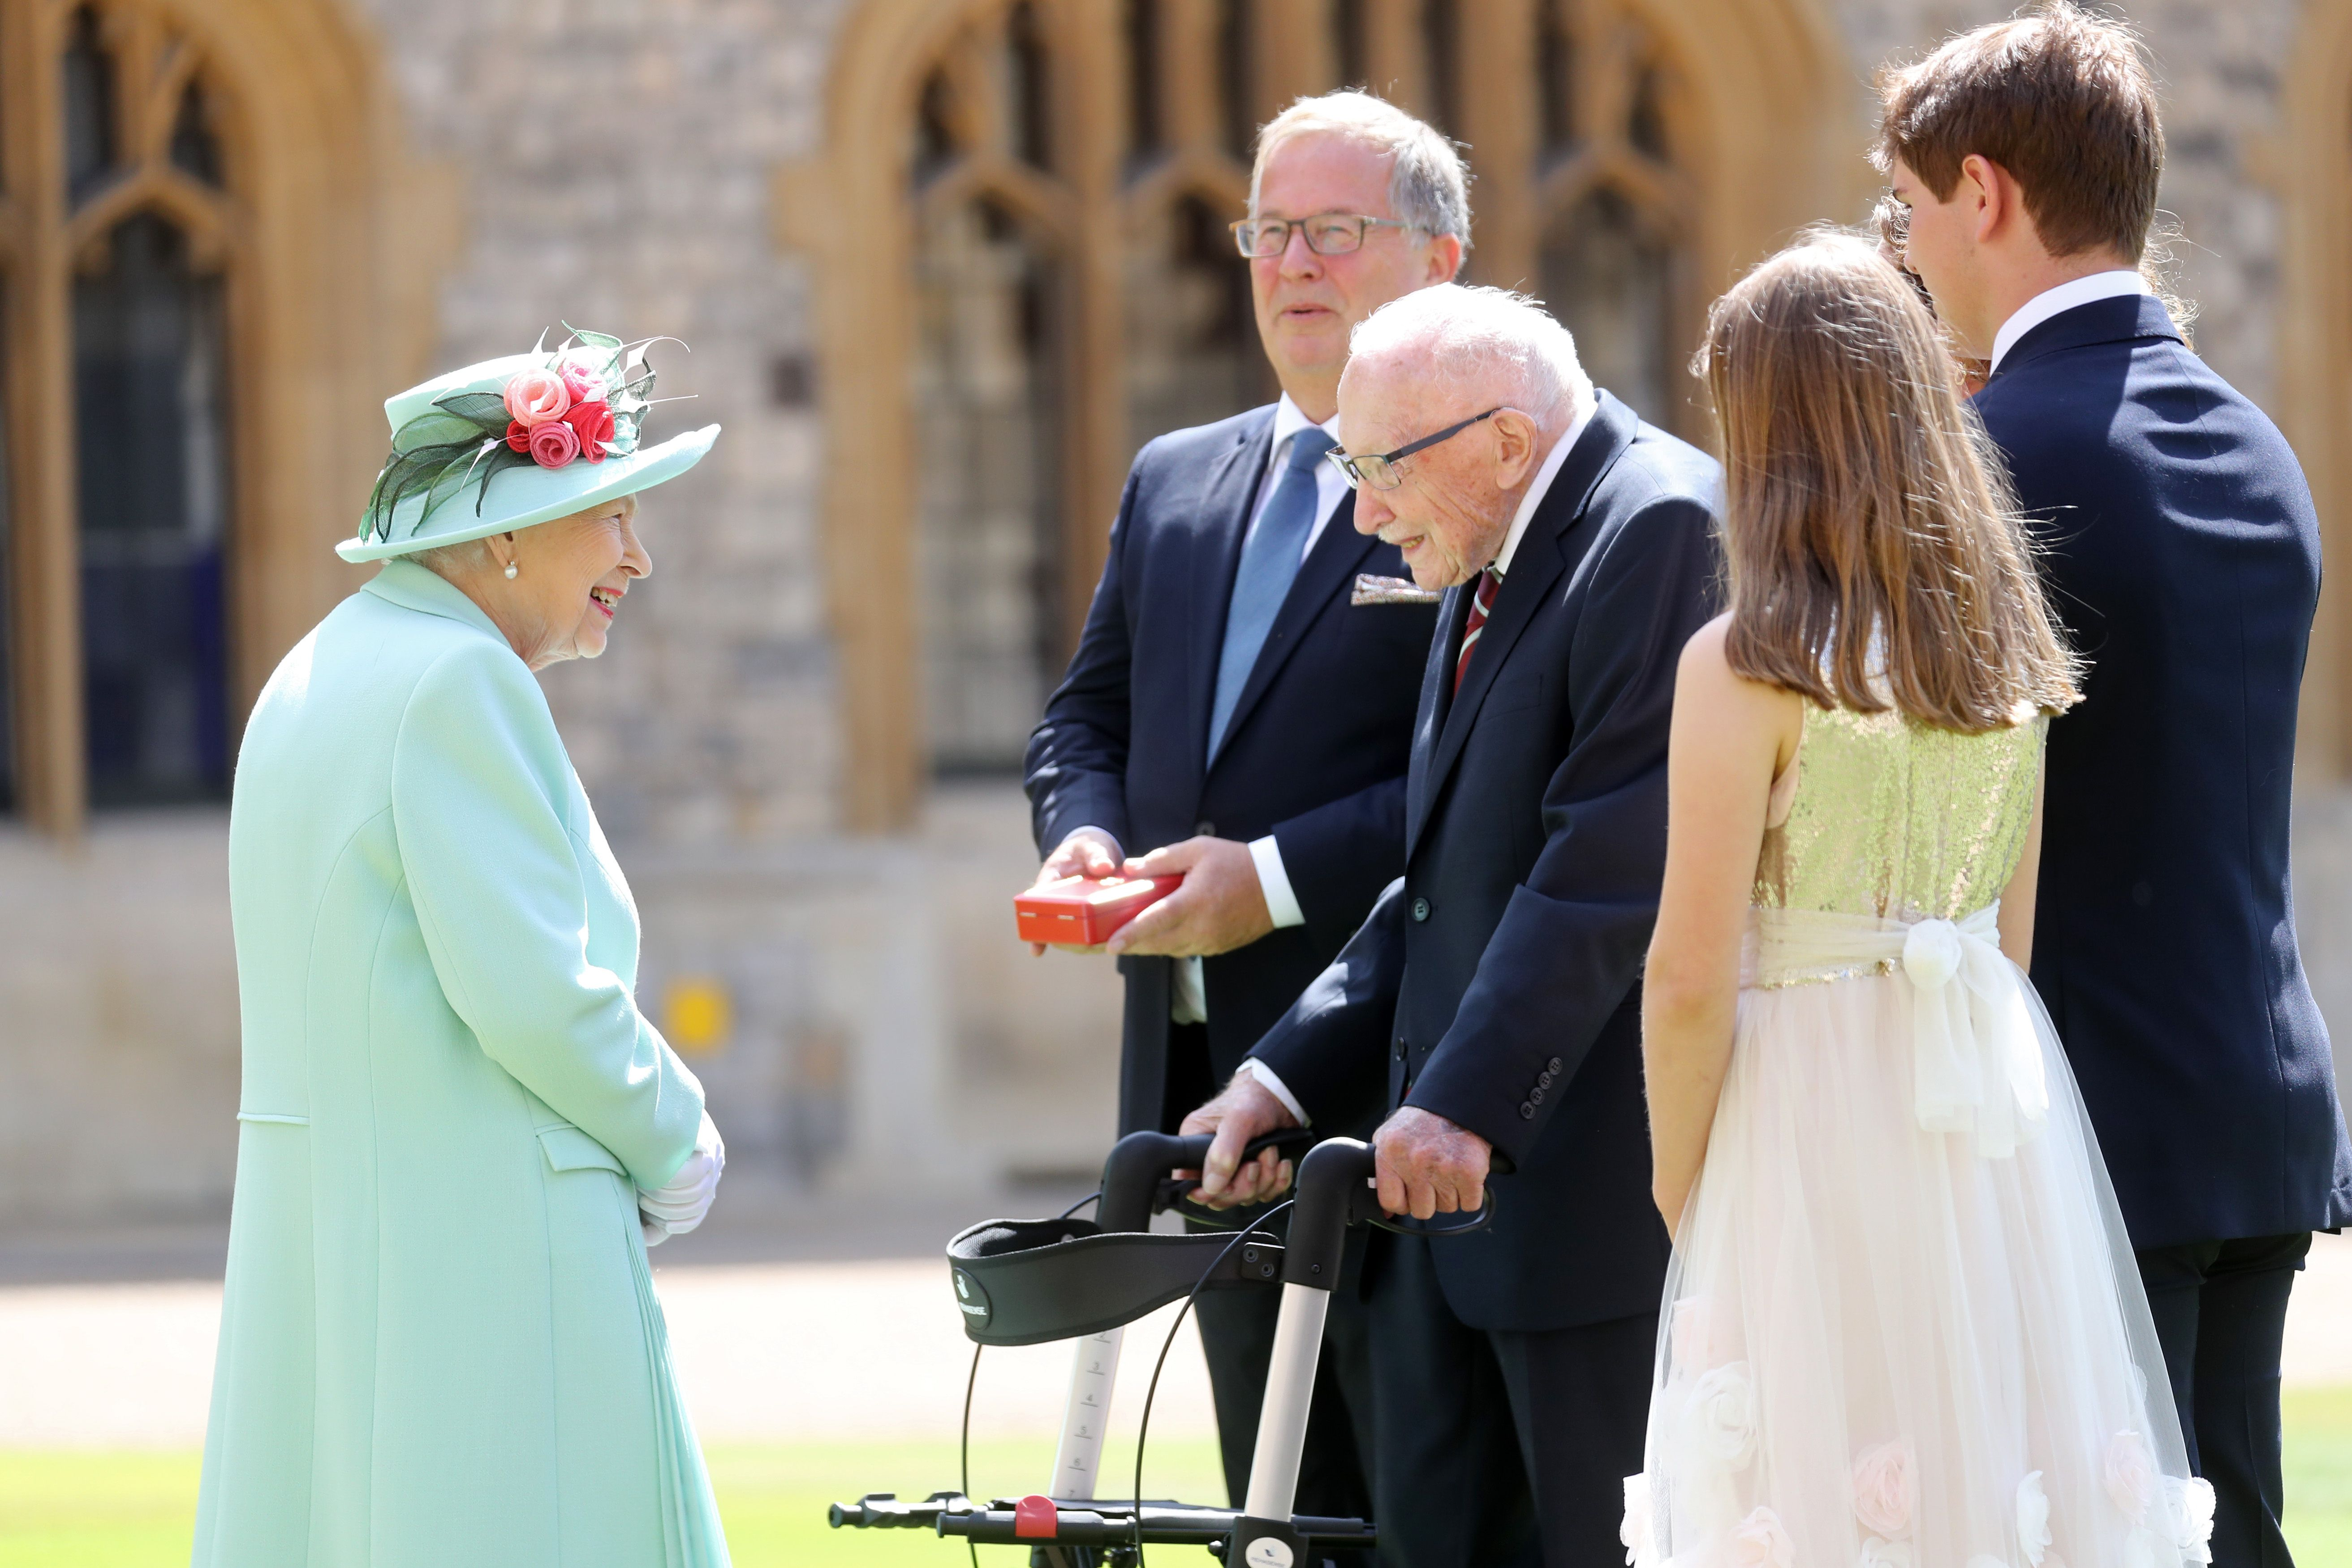 Queen Elizabeth II talks Captain Sir Thomas Moore and his family after awarding him with the insignia of Knight Bachelor at Windsor Castle on July 17, 2020 in Windsor, England.   Photo: Getty Images